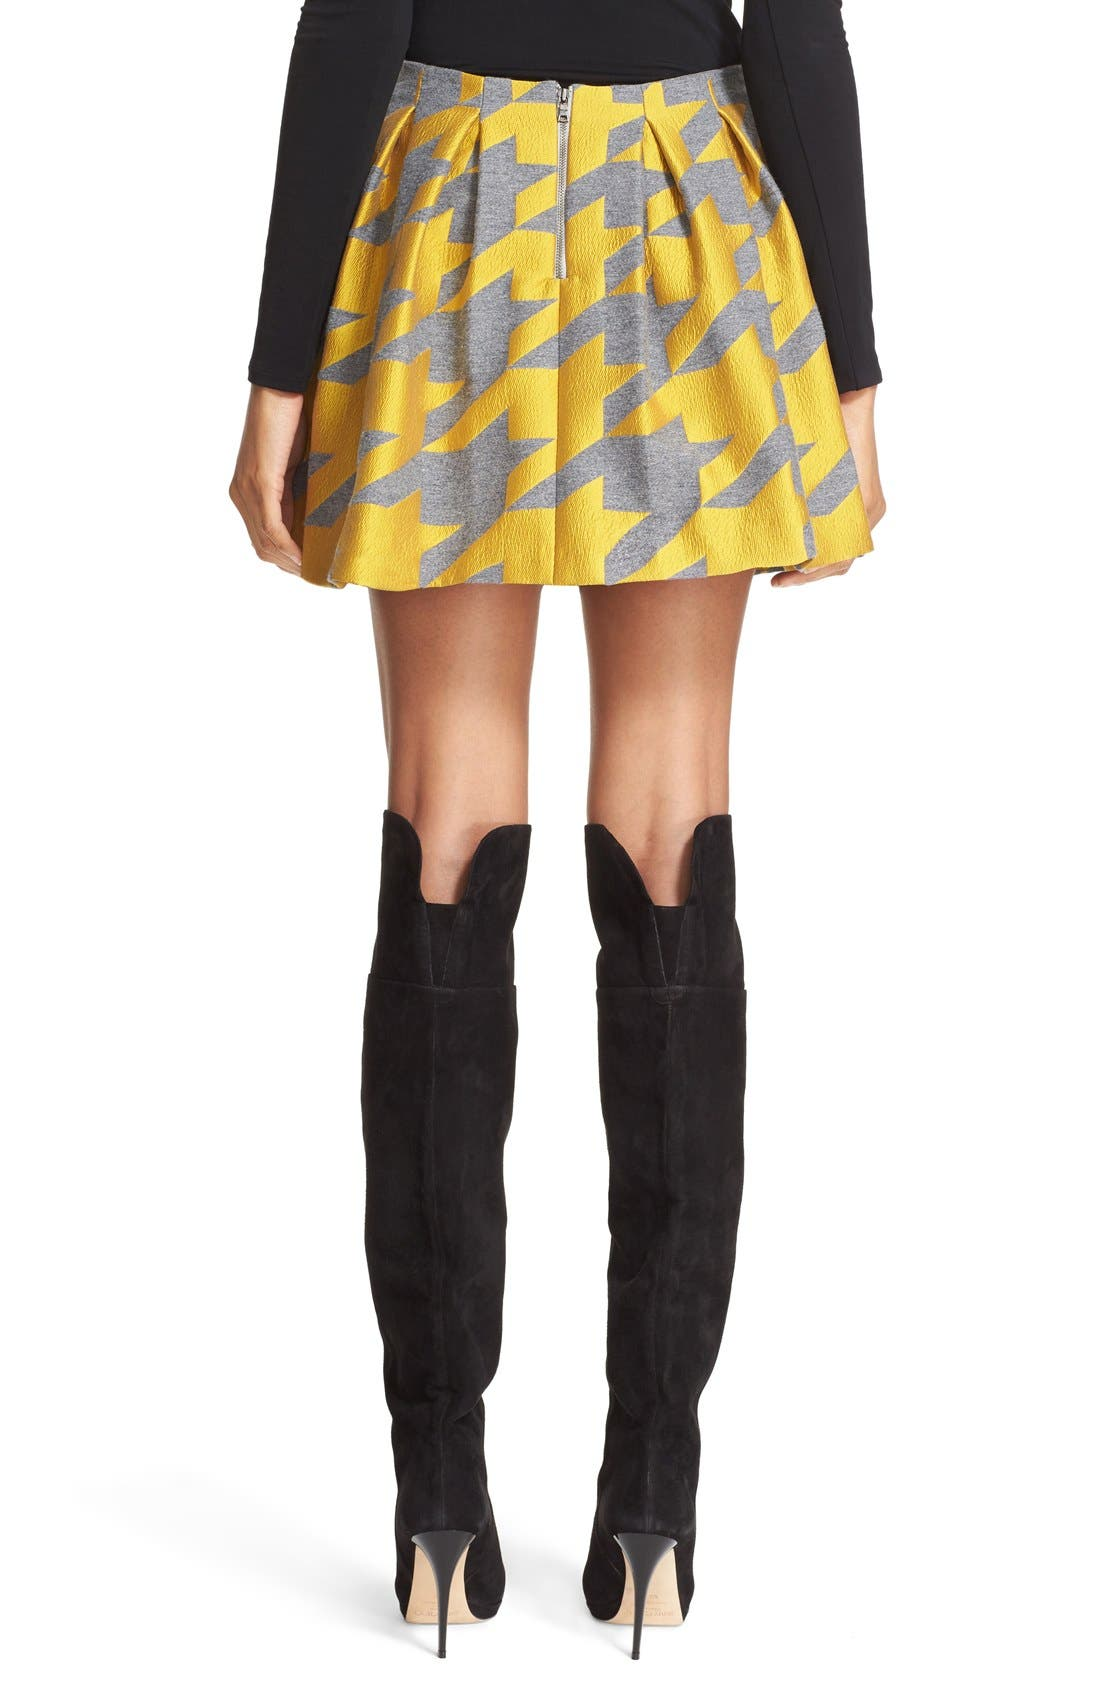 ALICE + OLIVIA,                             'Connor' Oversize Houndstooth Lampshade Skirt,                             Alternate thumbnail 5, color,                             700